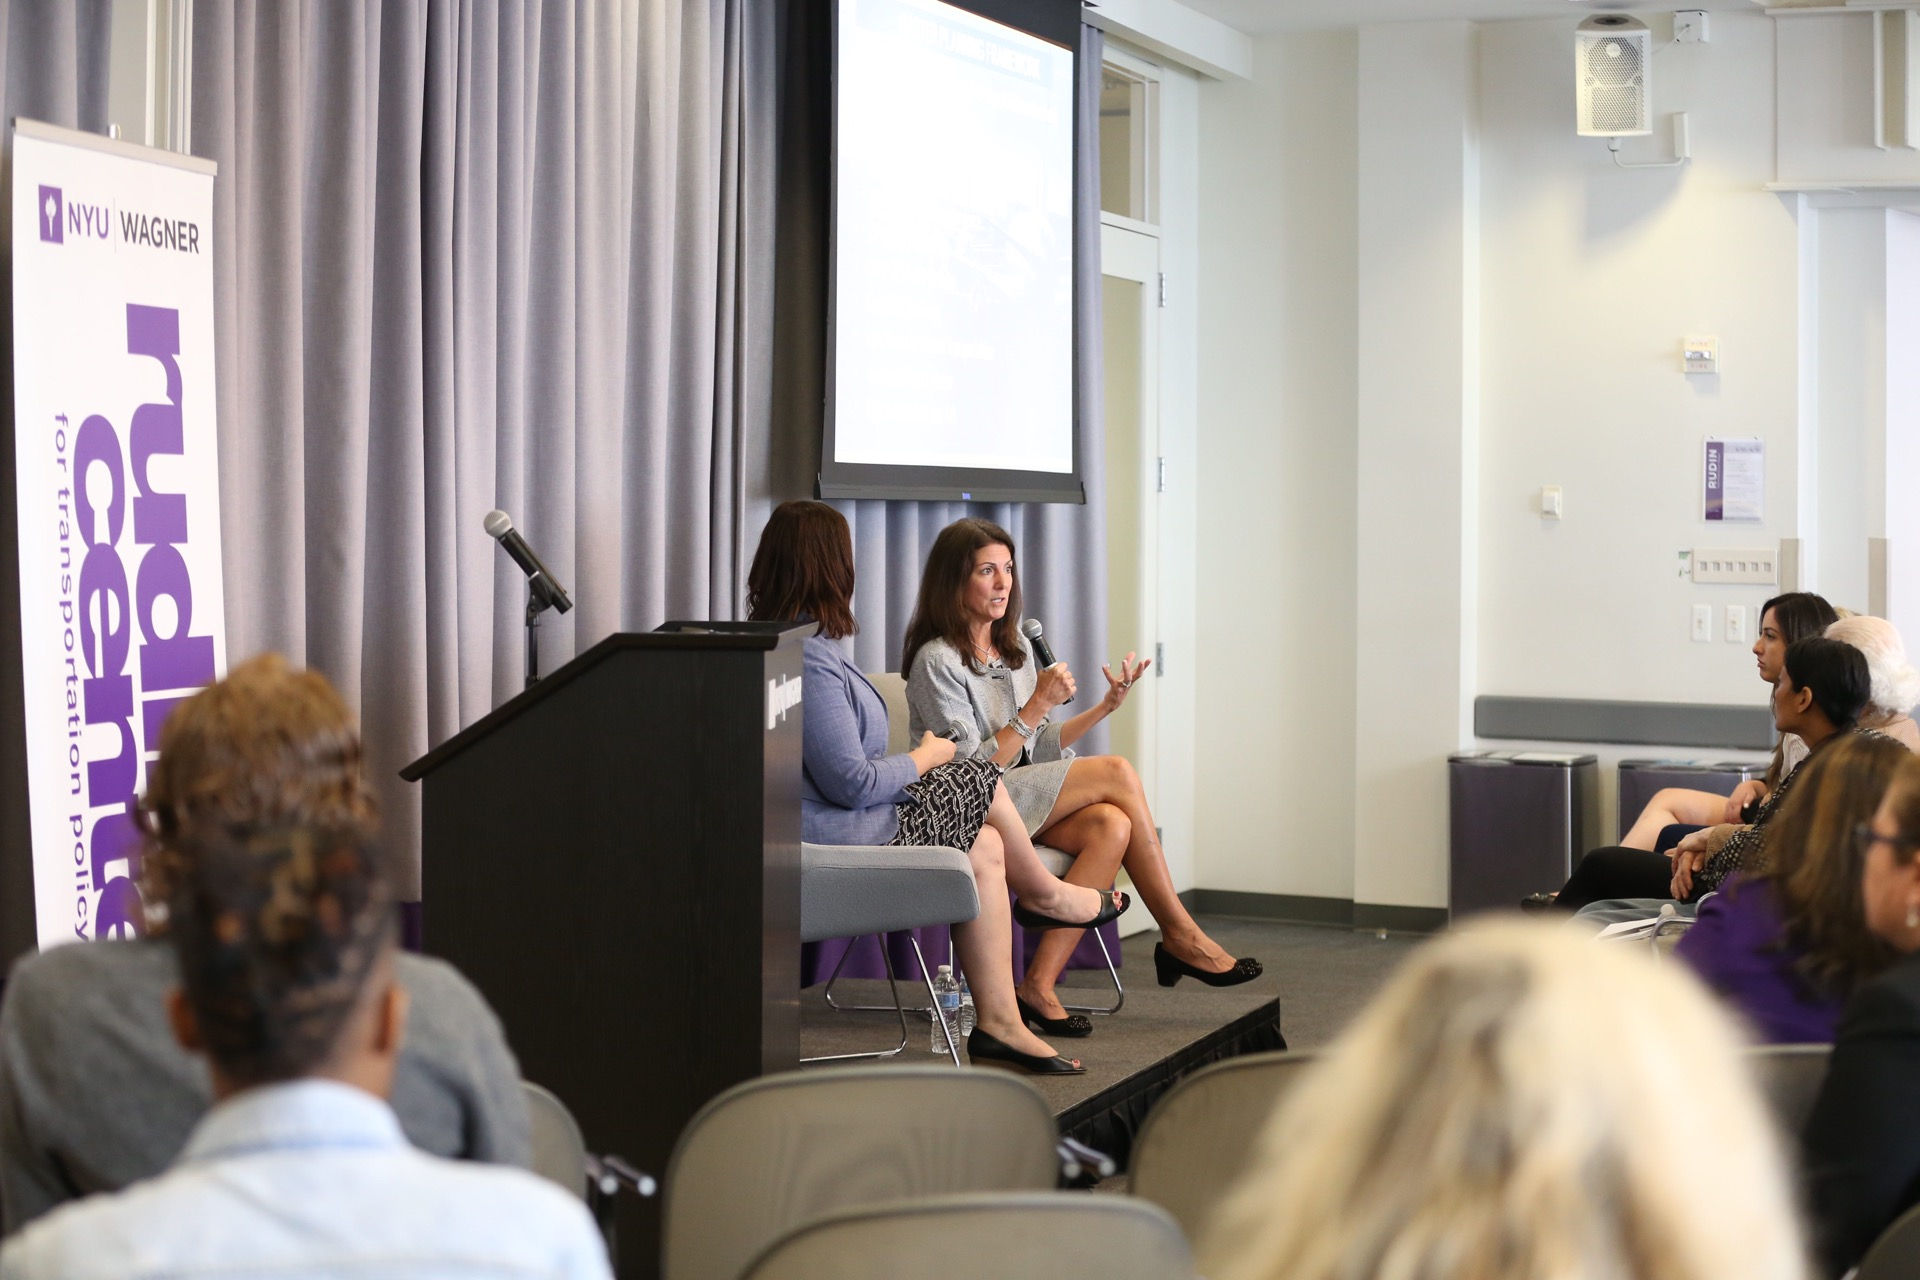 Lysa Scully Speaks at the NYU Rudin Center